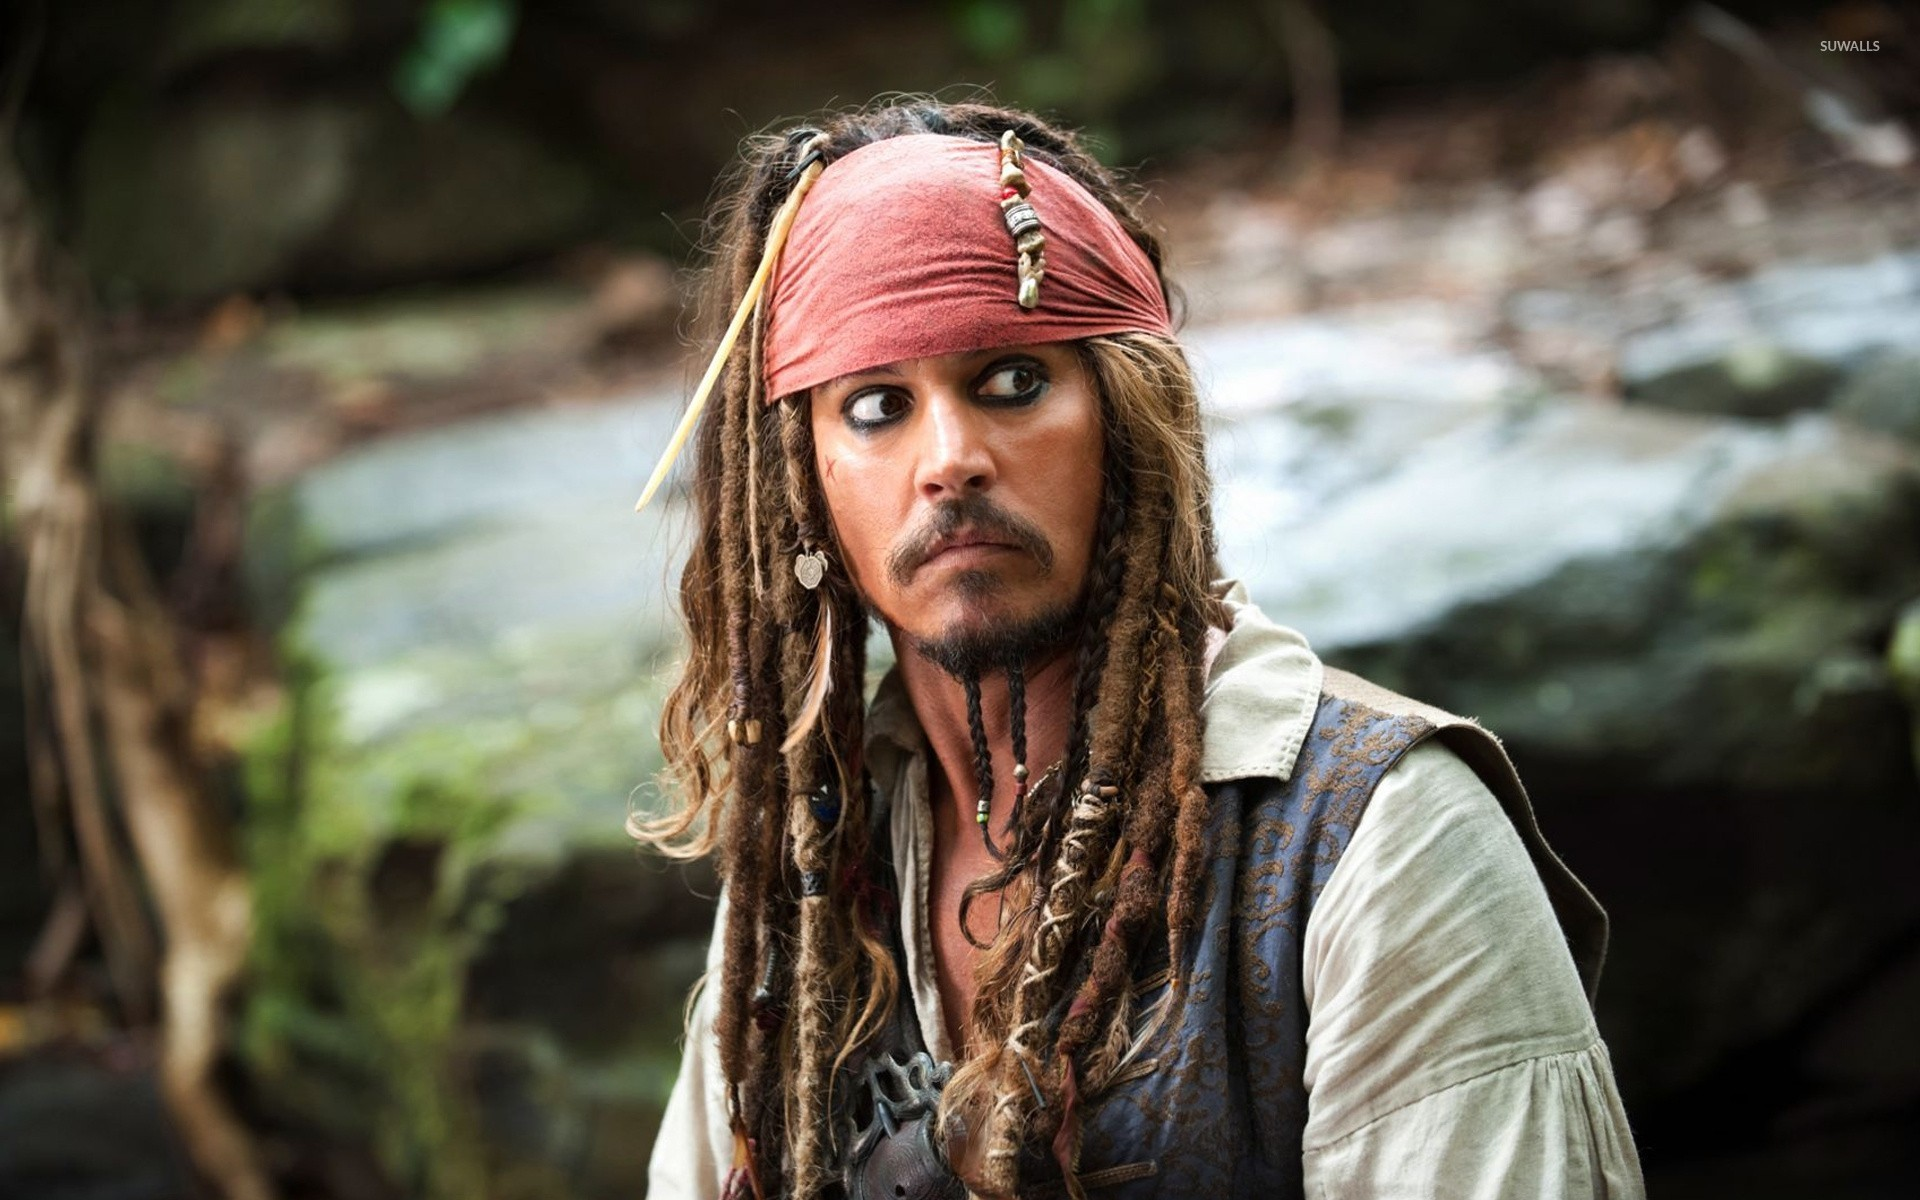 Captain Jack Sparrow The Pirates Of The Caribbean 2